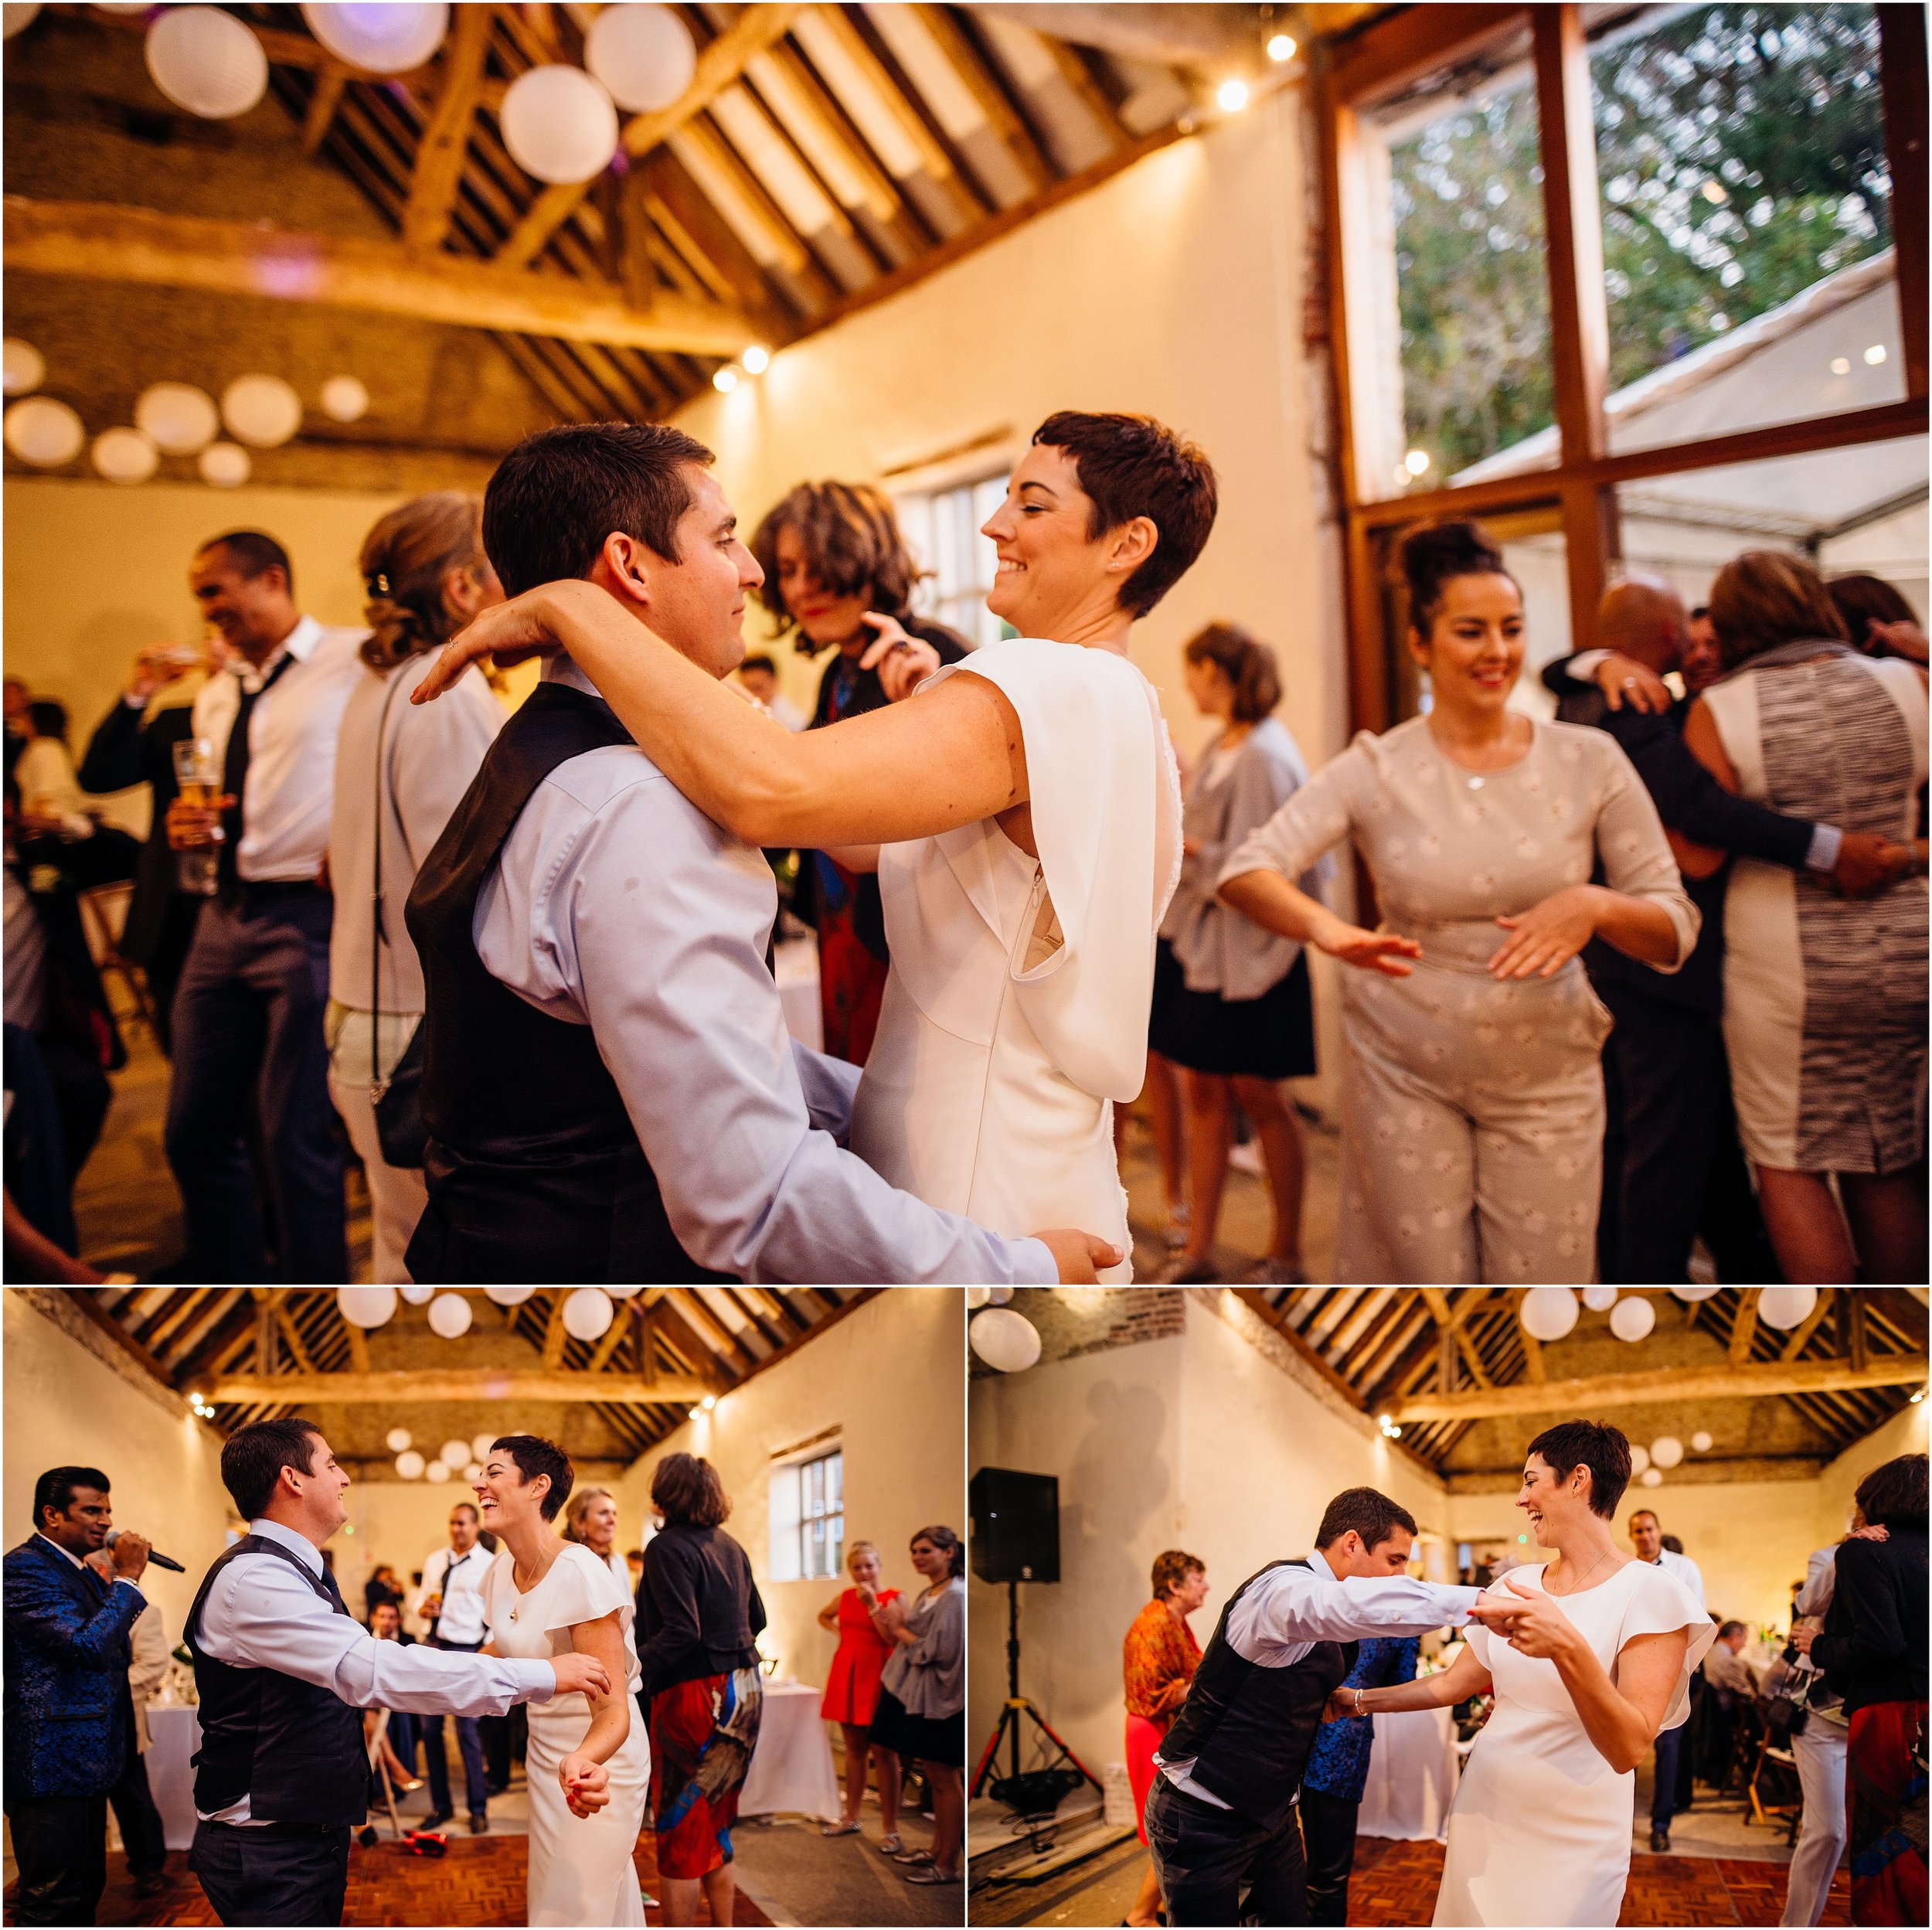 ALTERNATIVE STYLISH UK BARN WEDDING-ISLE OF WIGHT_0070.jpg